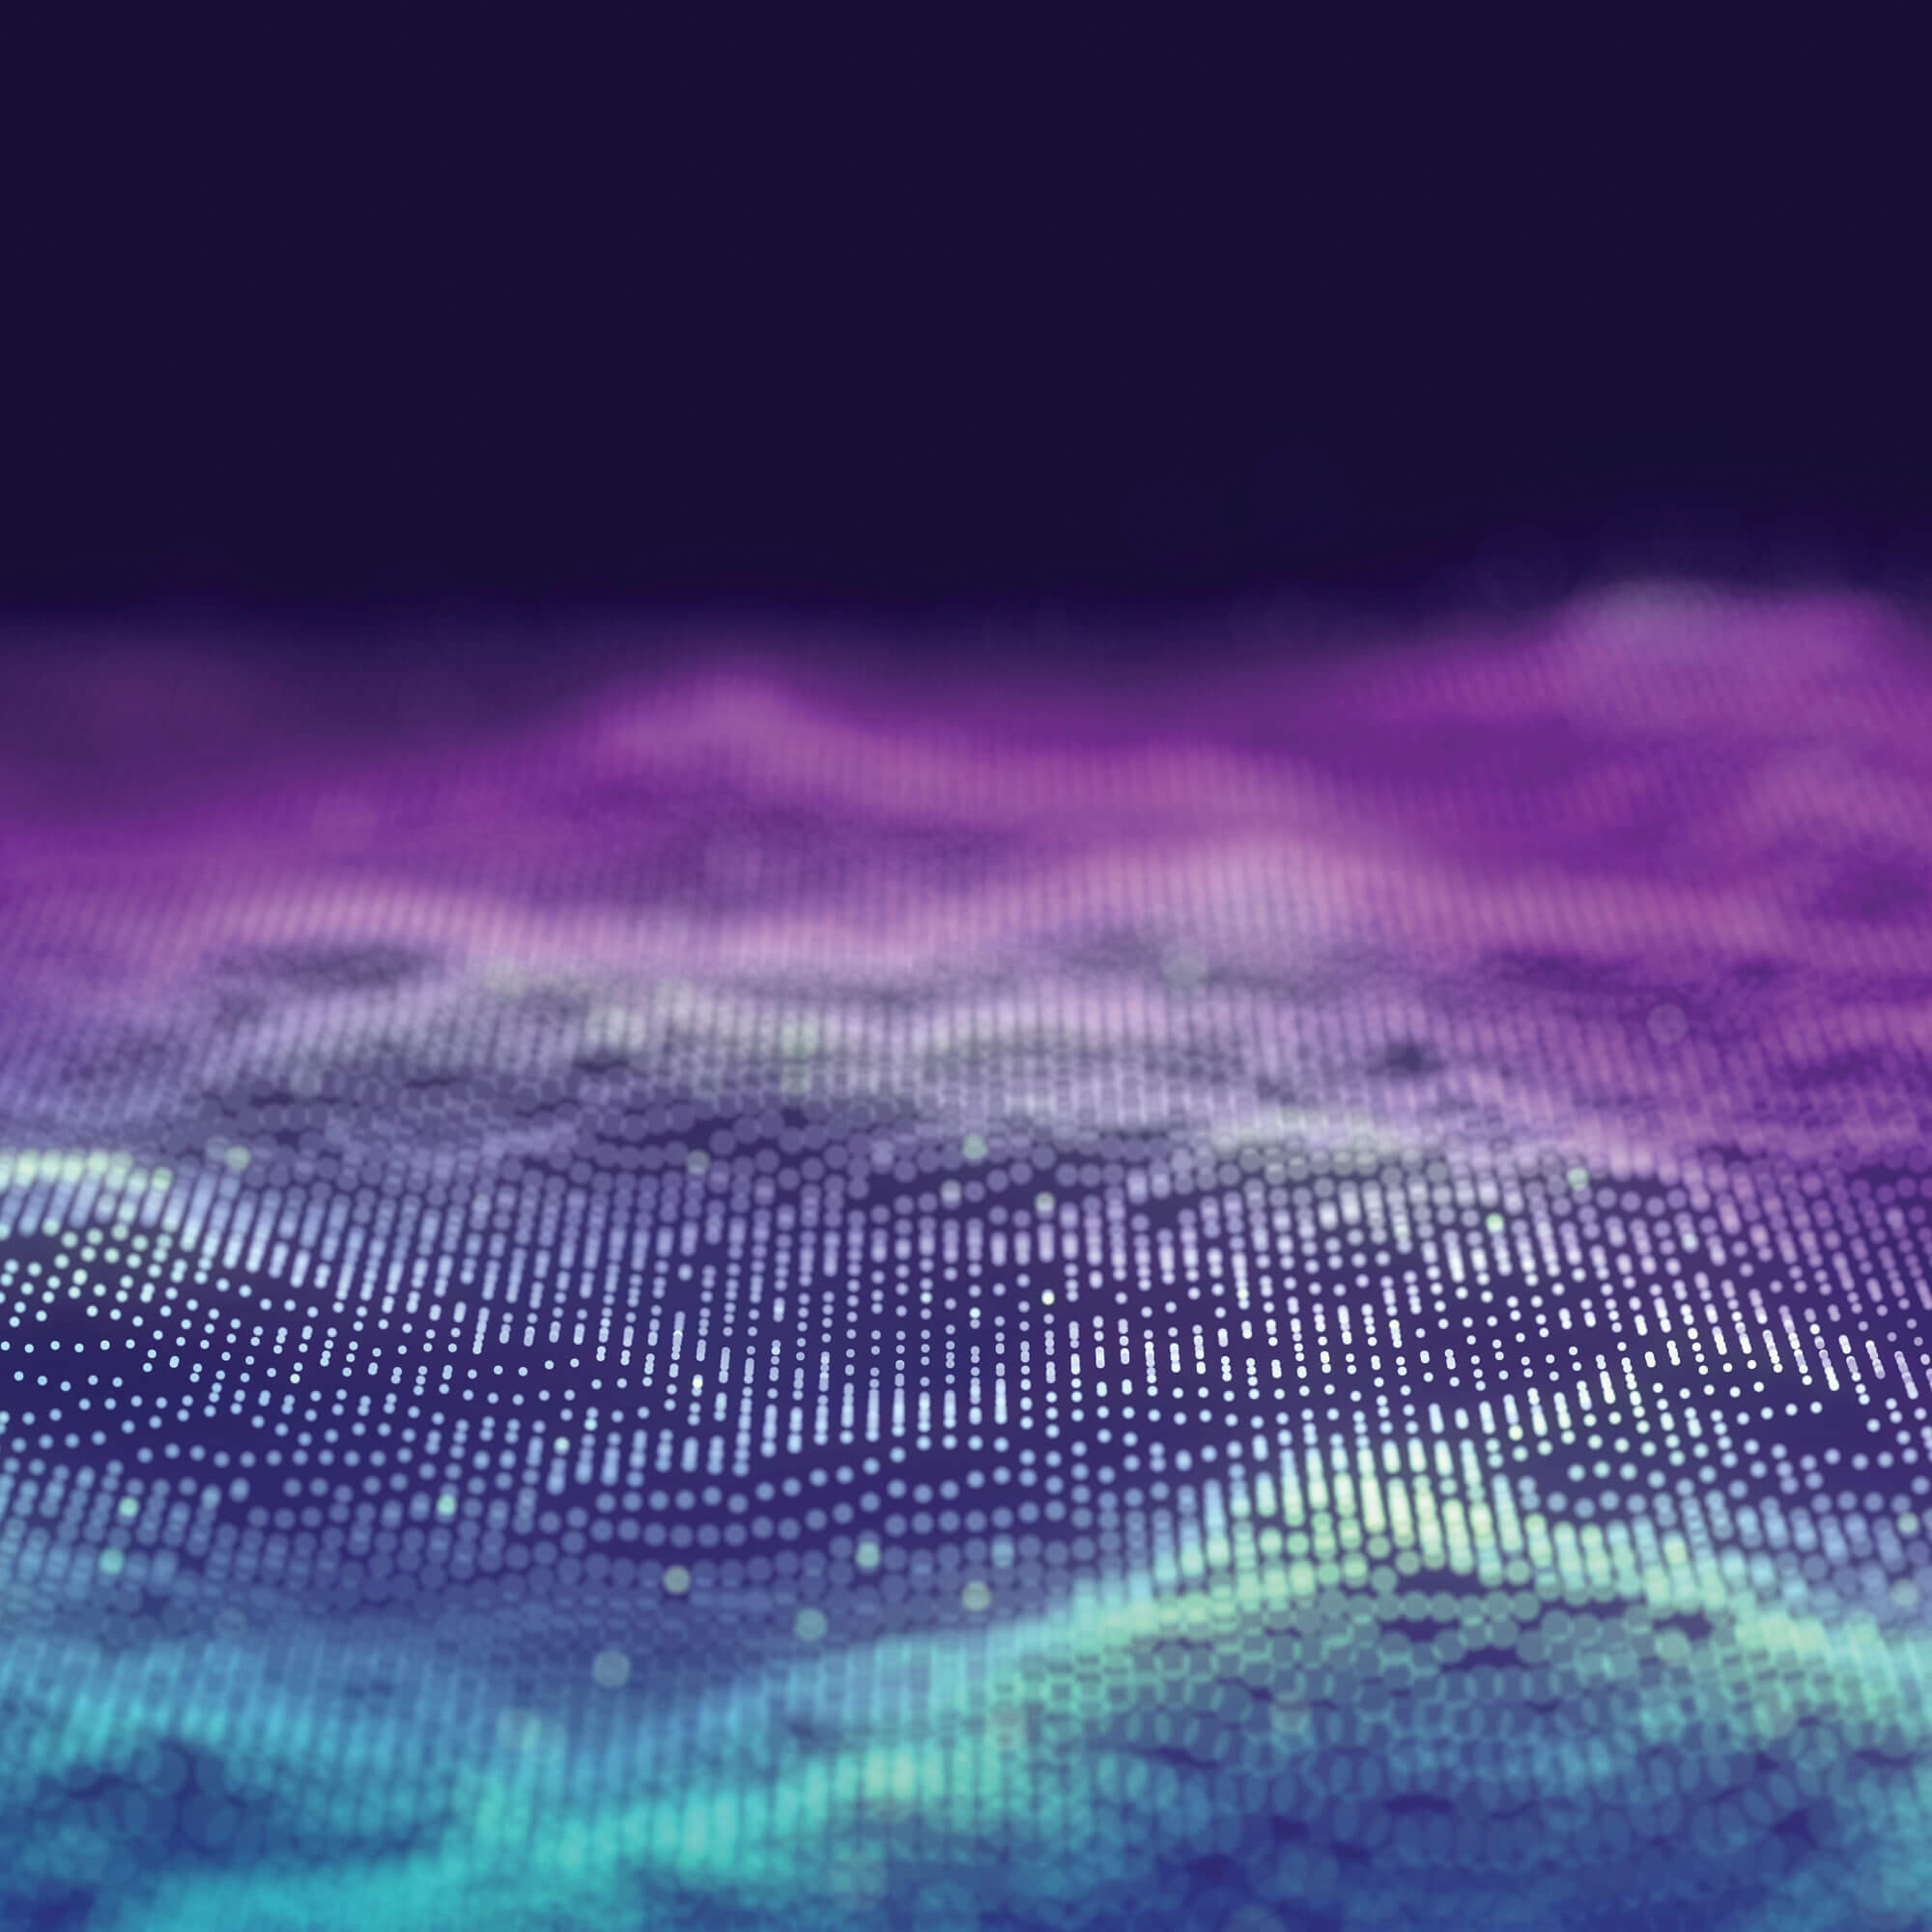 Abstract waves with gradient colour, from purple to teal